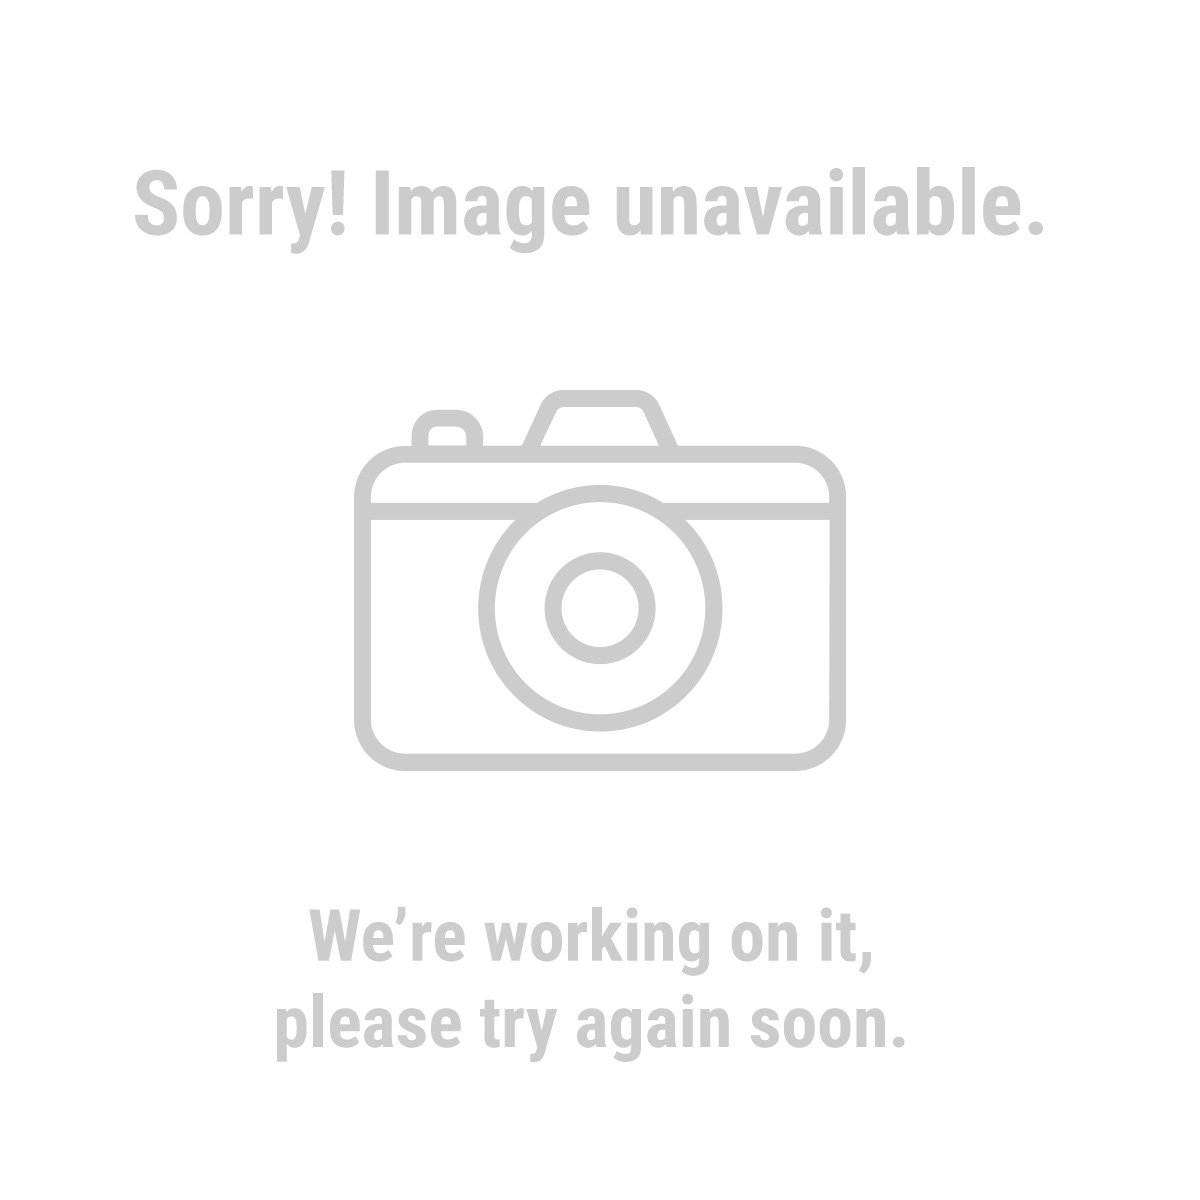 3 Monitor Chair 800 Lb Low Lift Transmission Jack